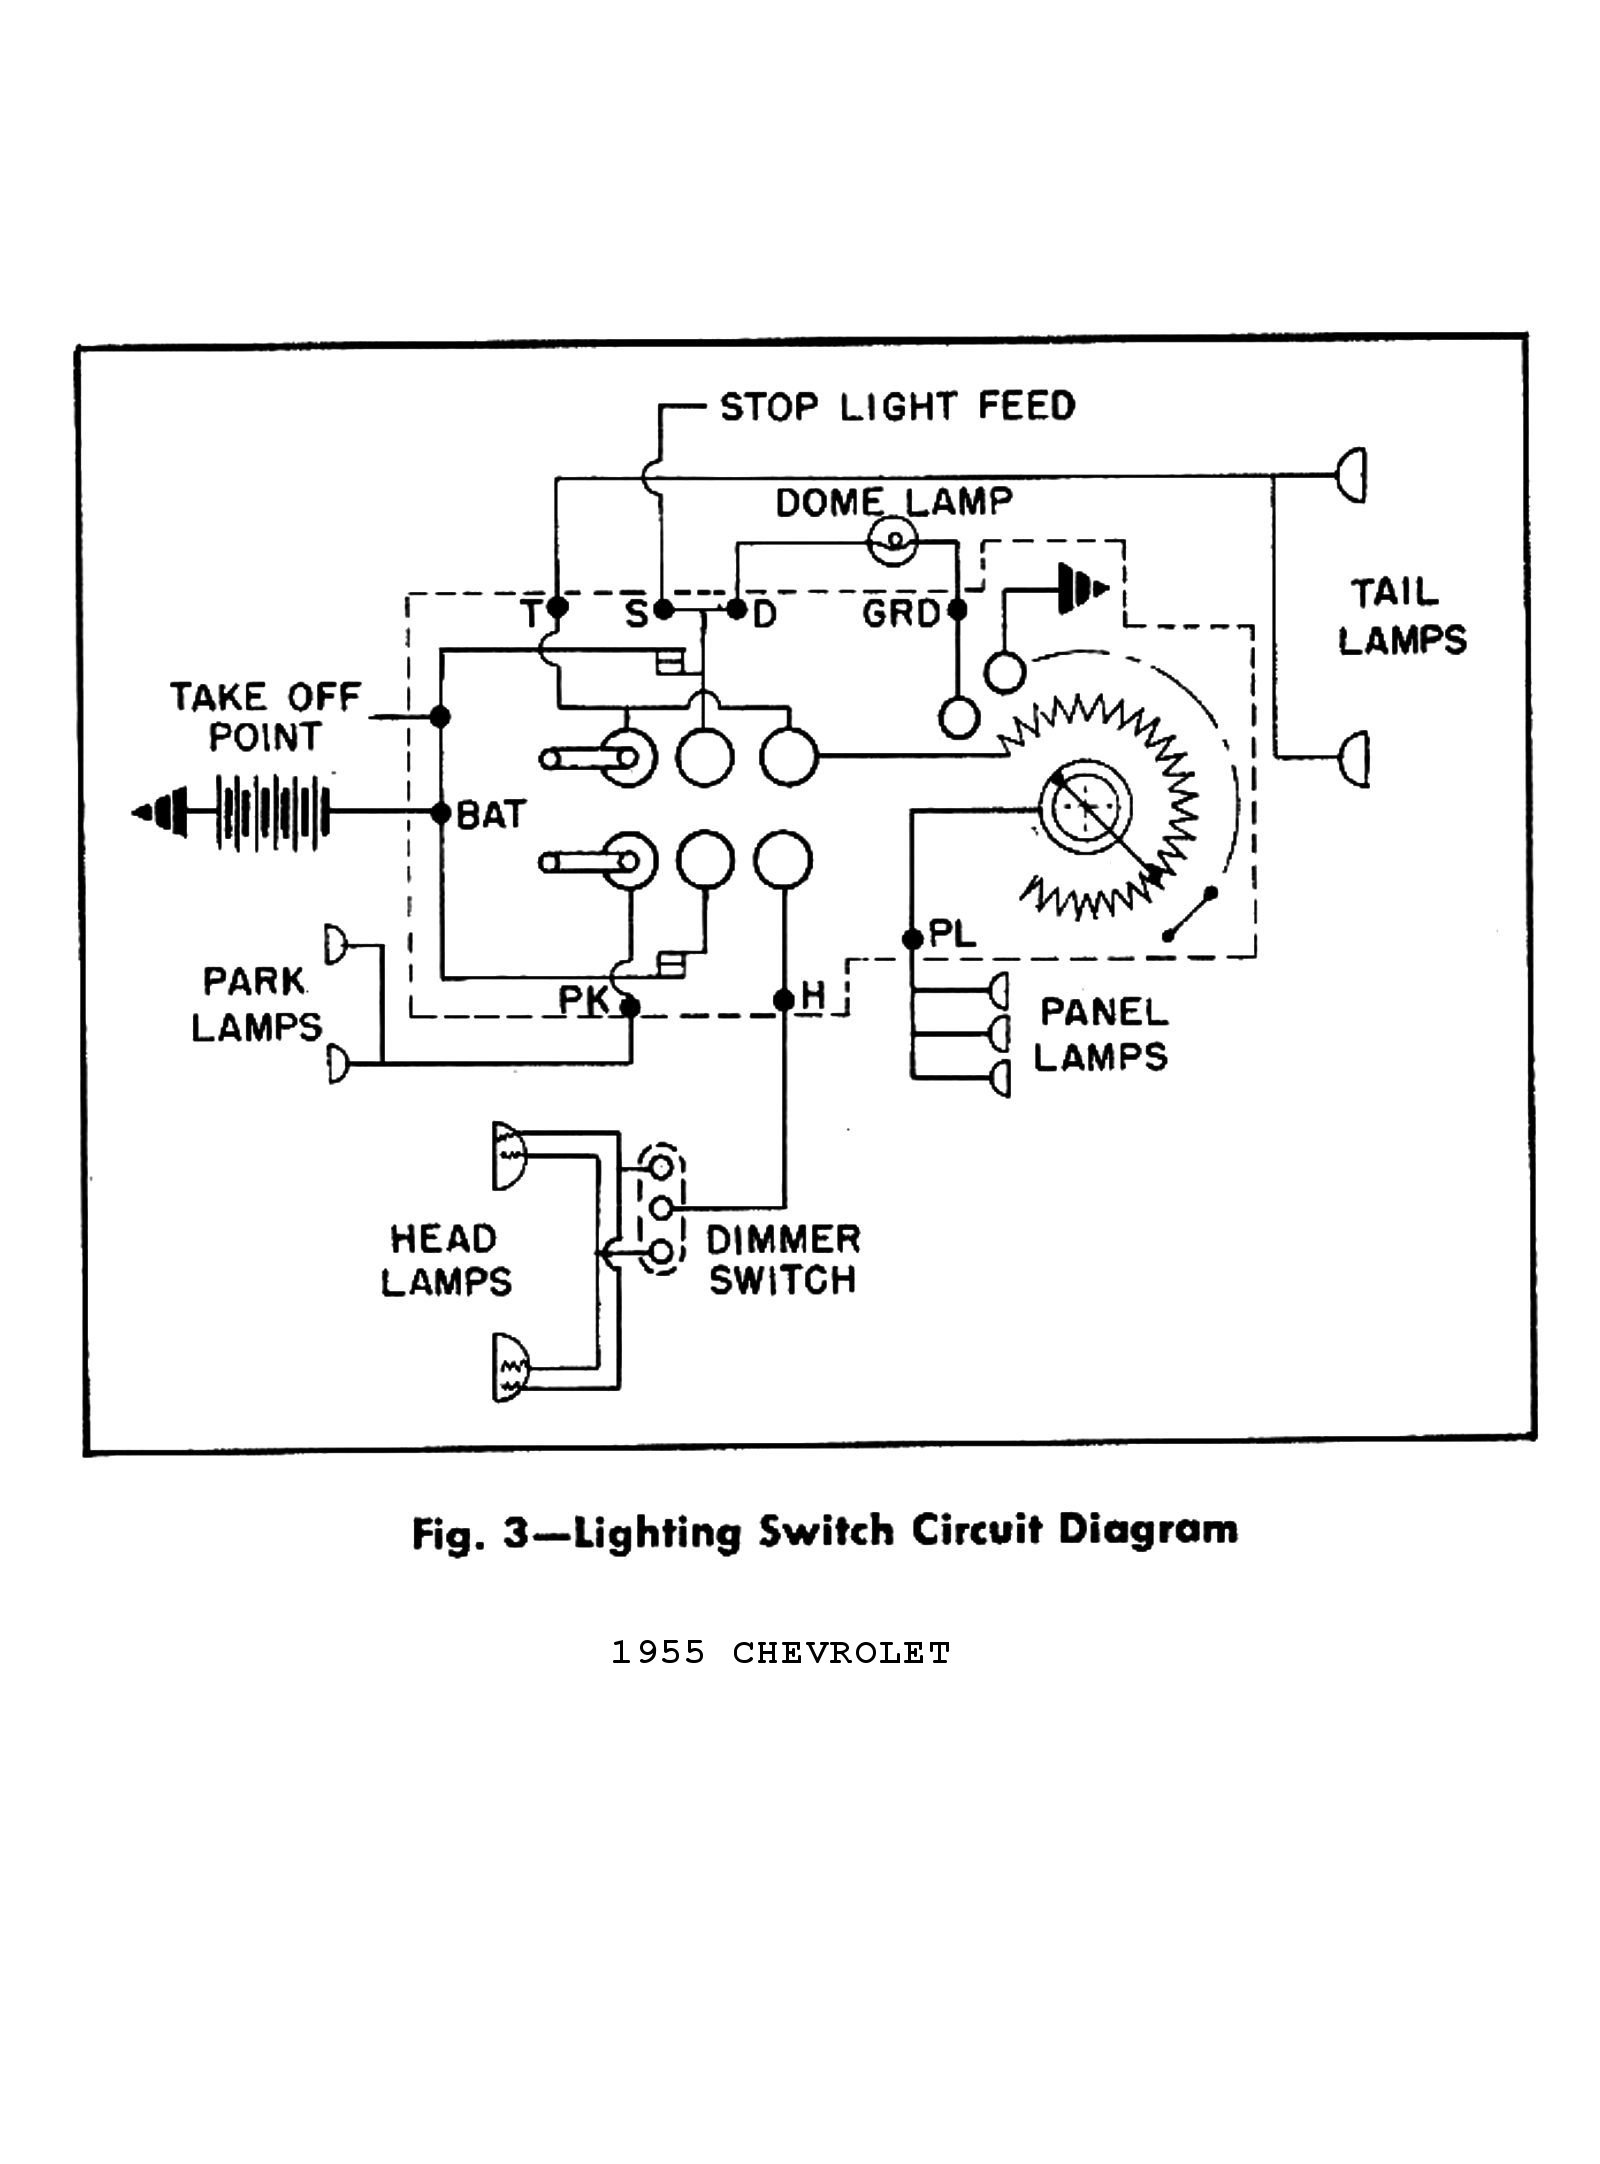 1956 Chevy Ignition Switch Wiring Diagram Wiring Diagram Complete Complete Lionsclubviterbo It